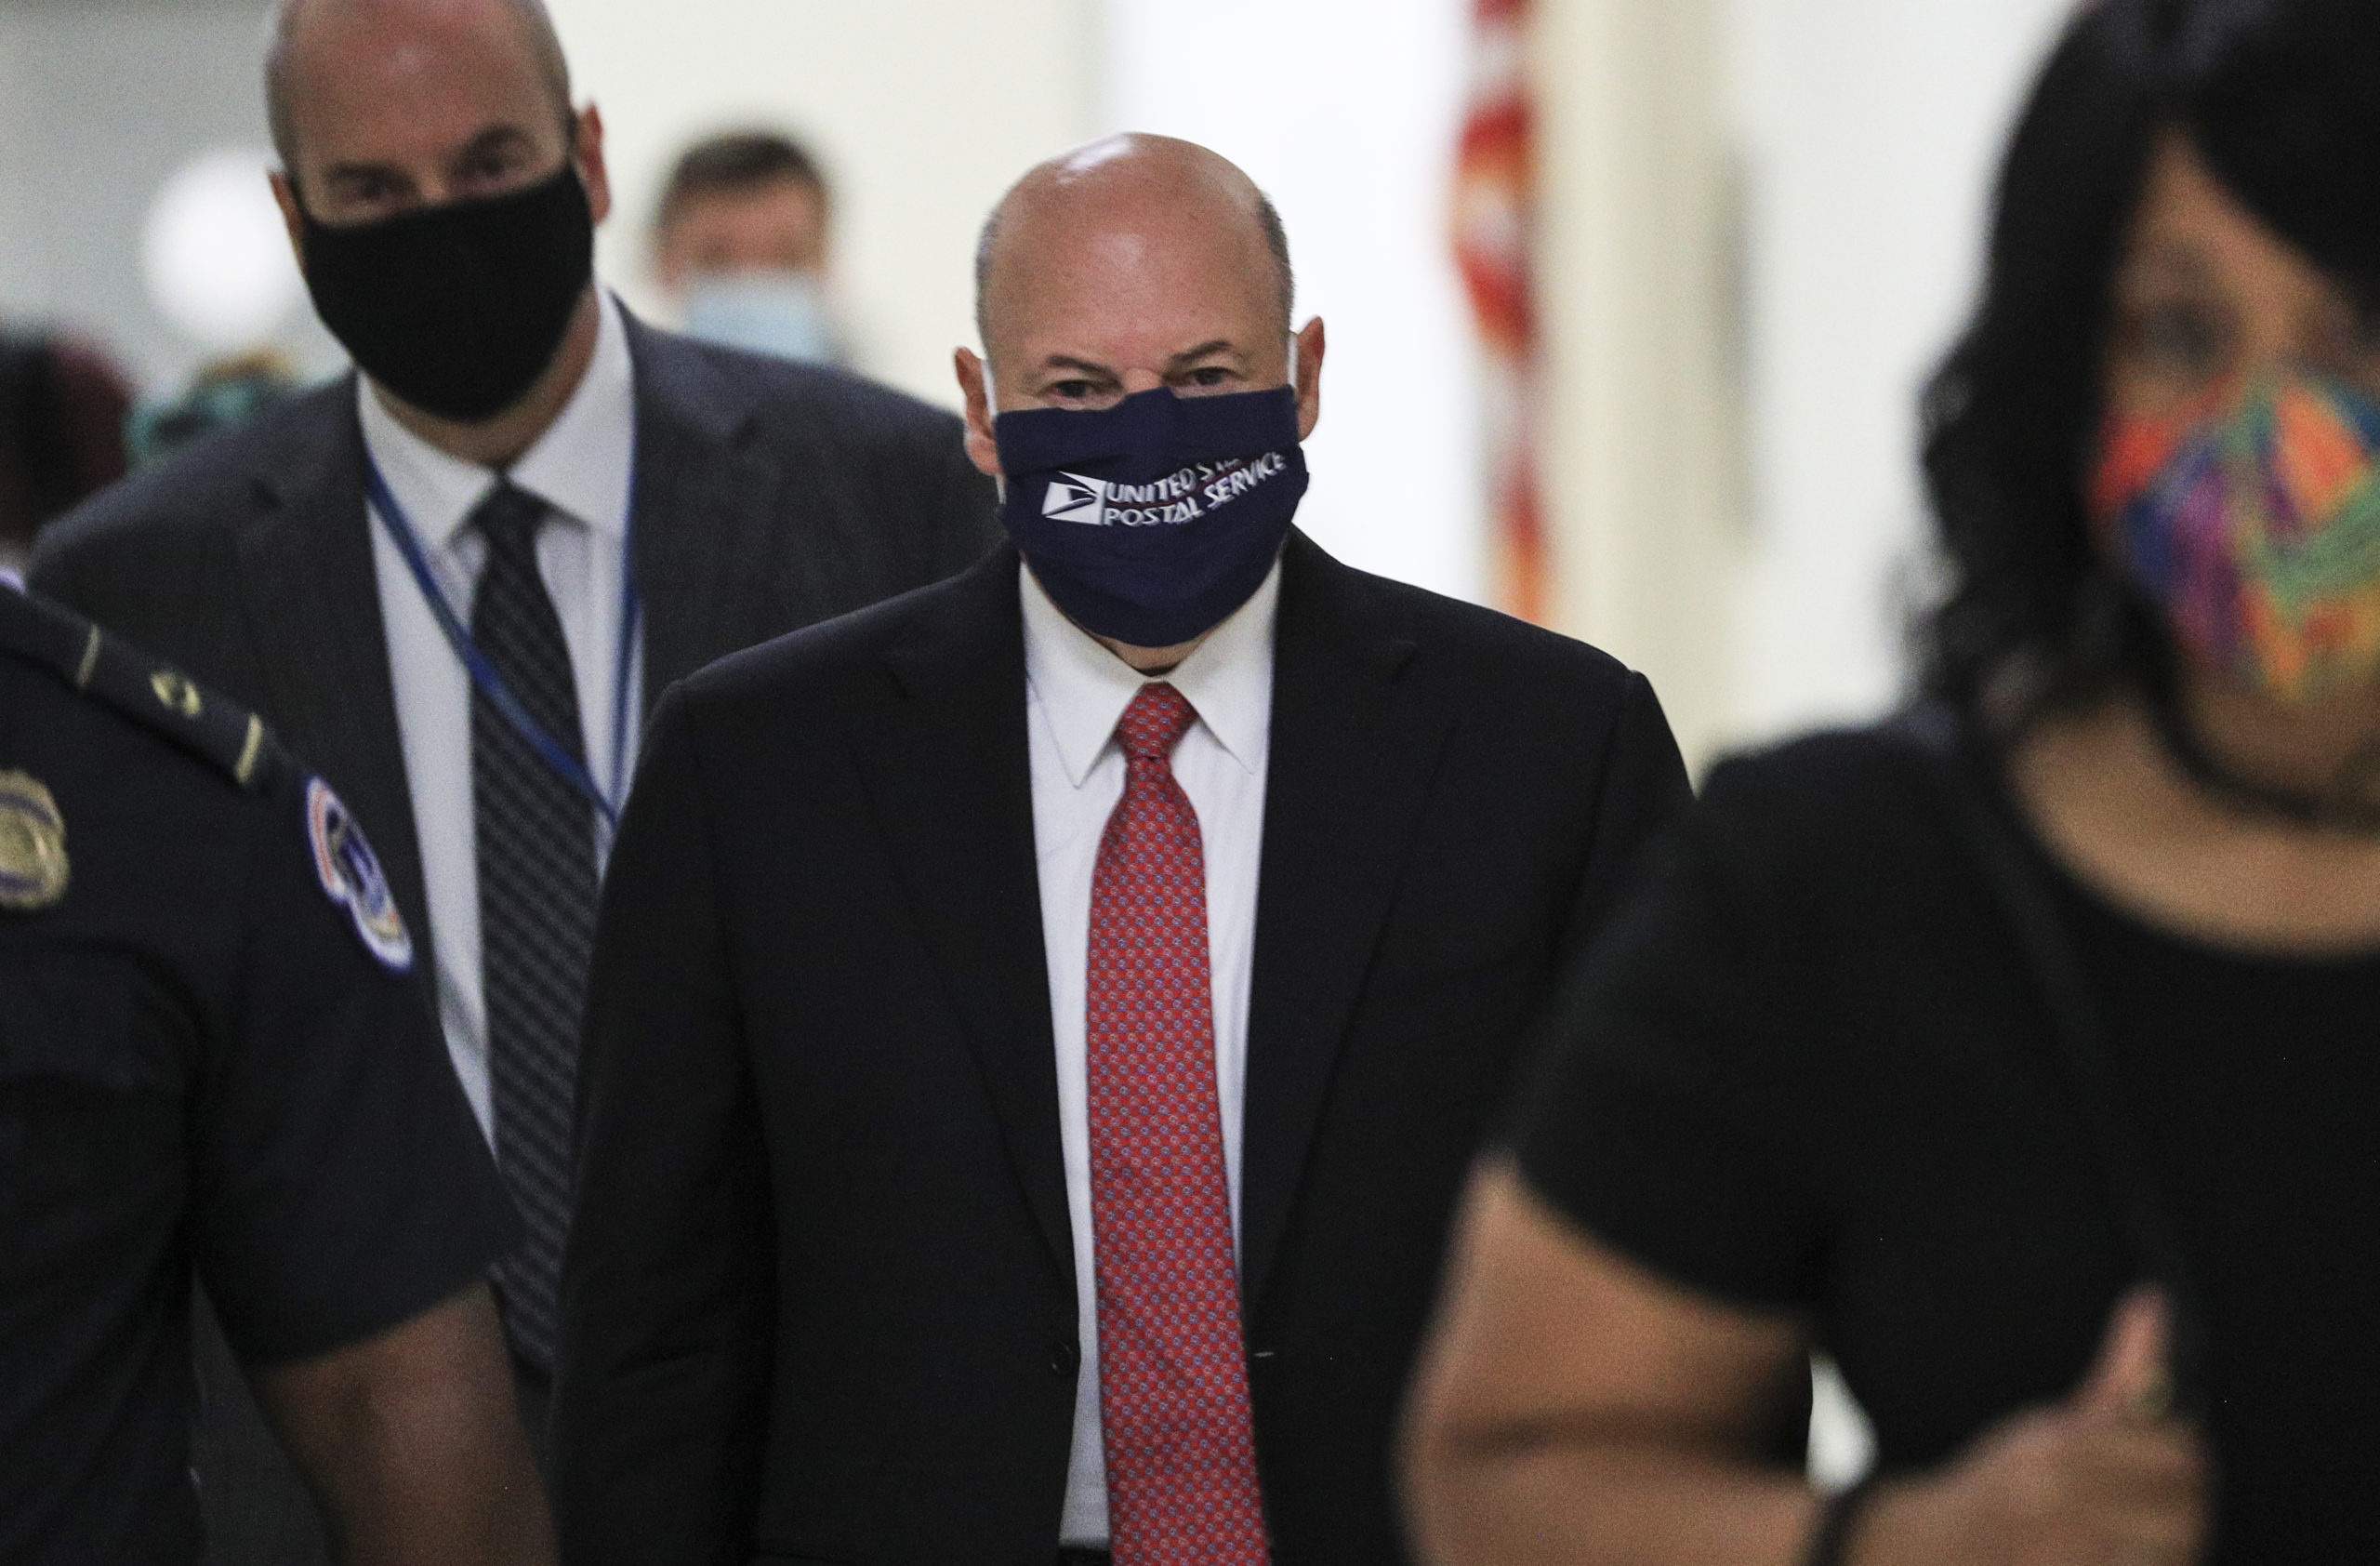 Postmaster General Louis DeJoy arrives for a House Oversight and Reform Committee hearing on Aug. 24. (Tom Brenner/Pool/Getty Images)